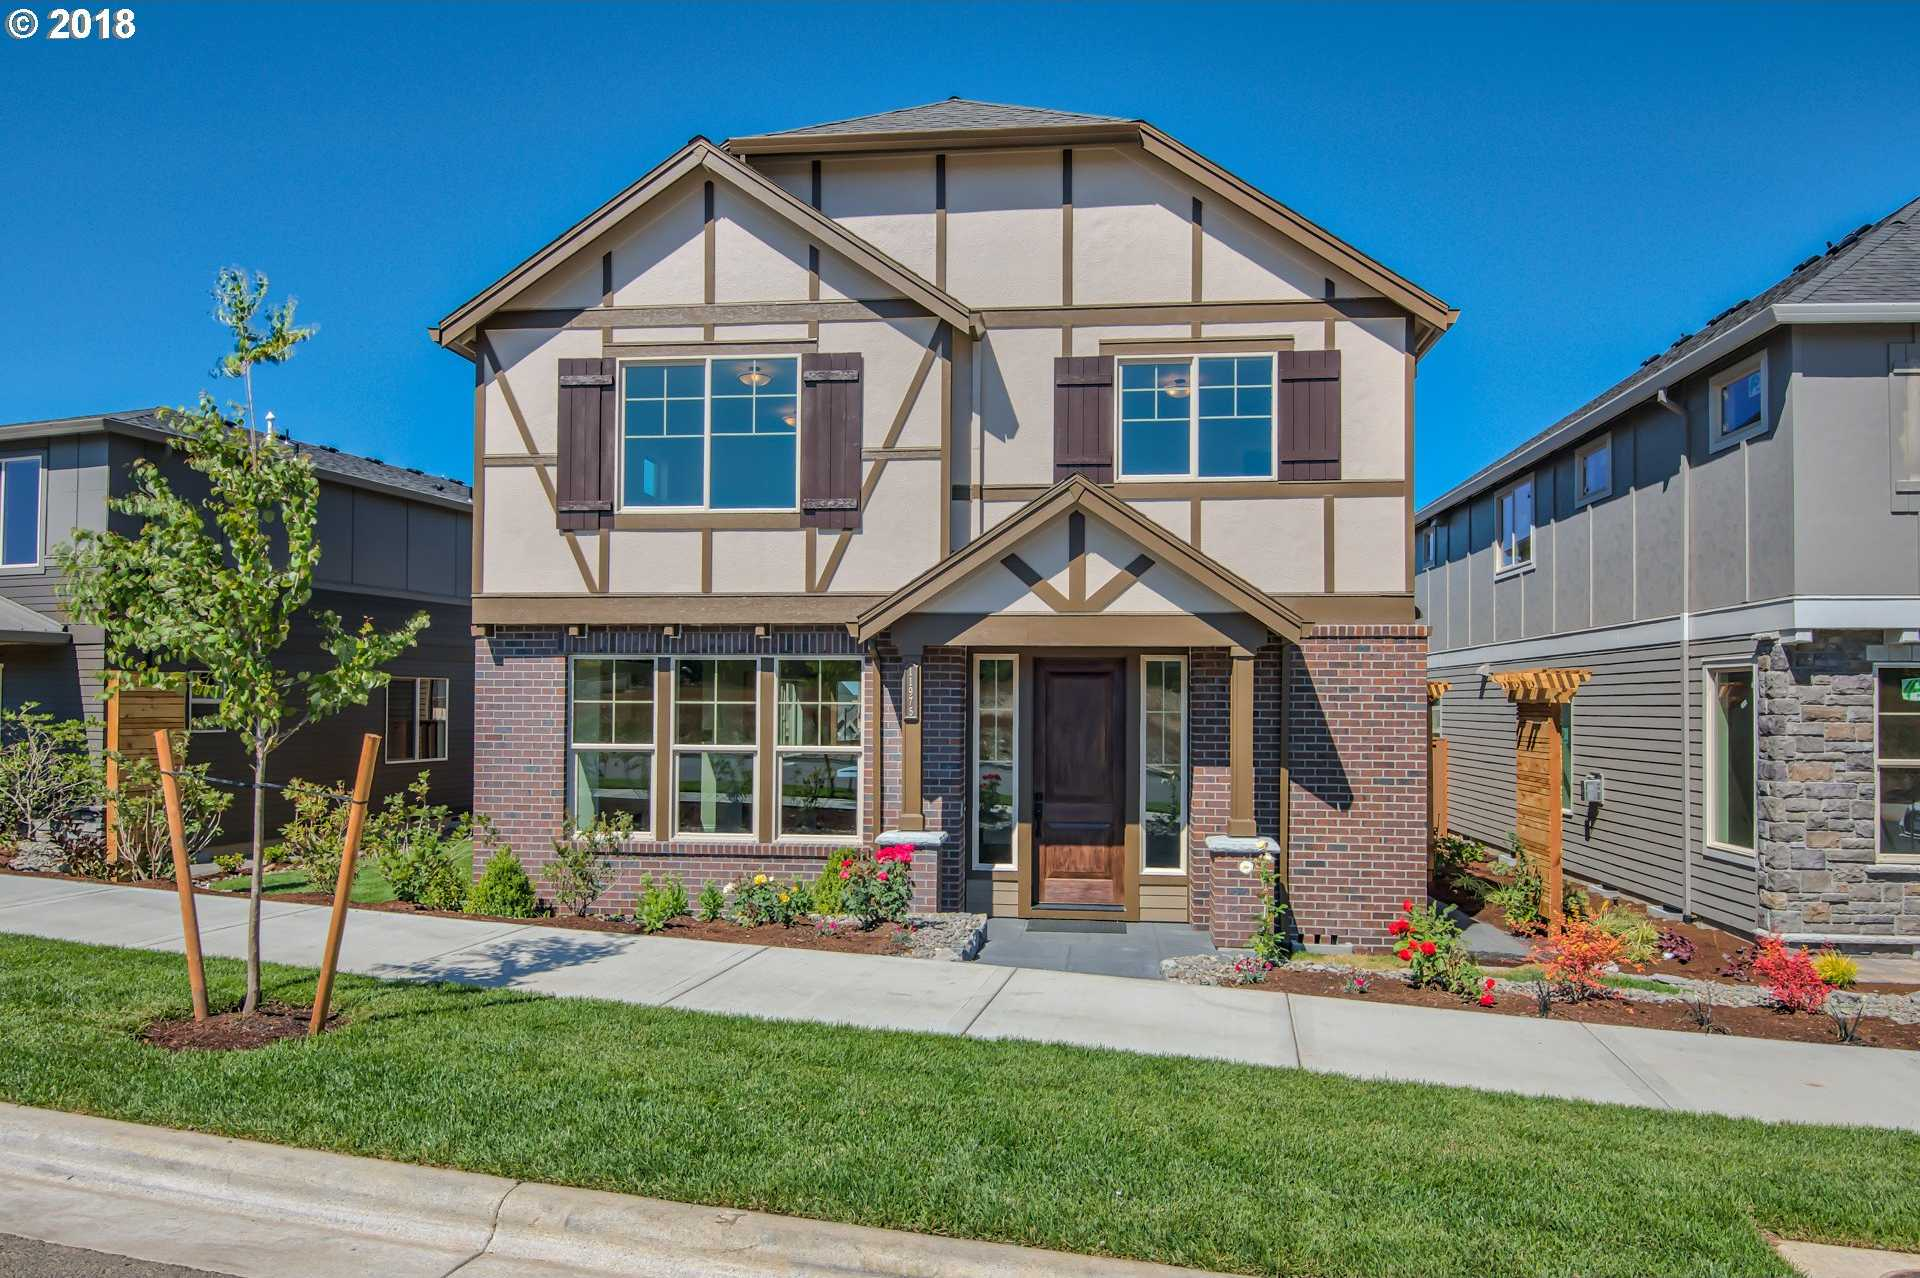 $709,900 - 4Br/3Ba -  for Sale in Thompson Woods - Arbor, Portland